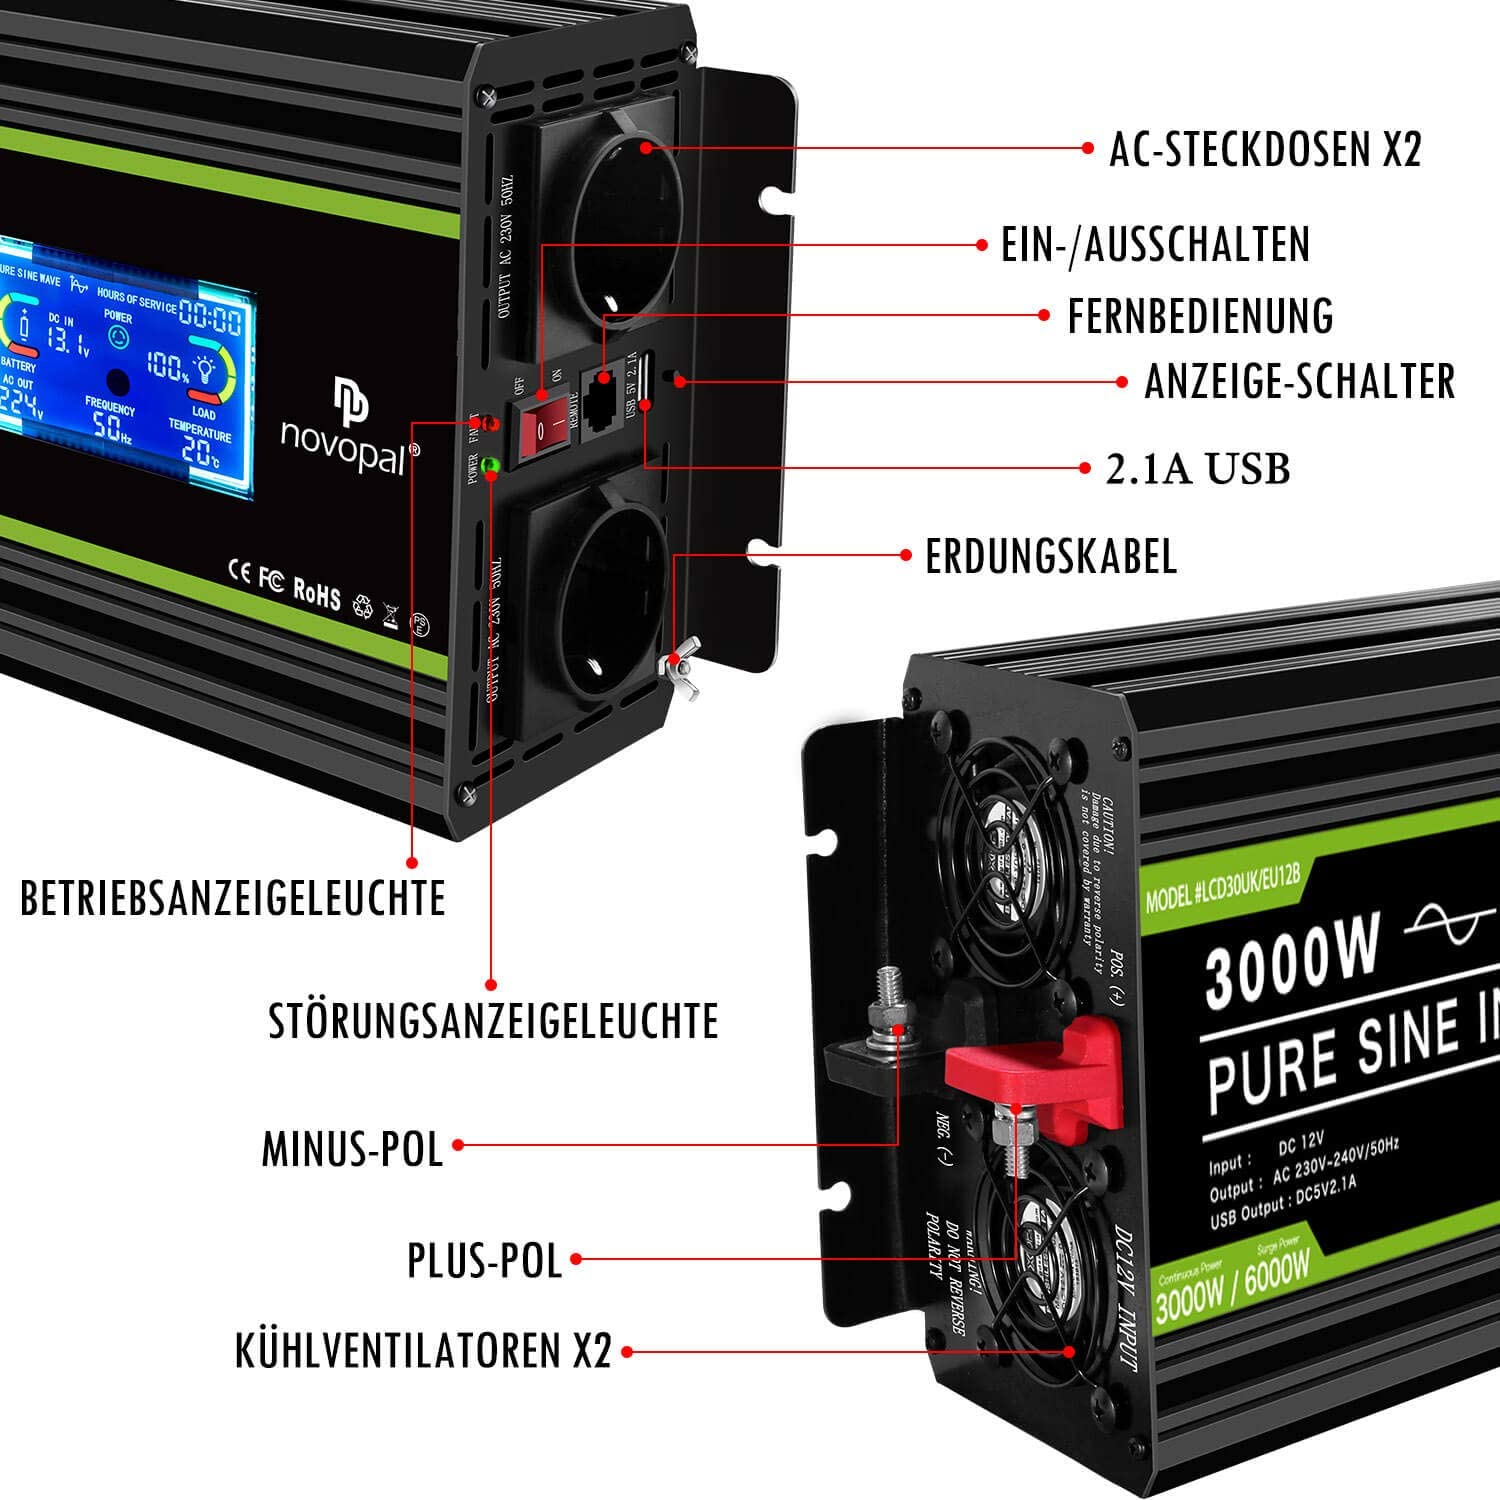 novopal Power Inverter Pure Sine Wave-3000 Watt 12V DC to 230V//240V AC Converter-LCD Display 2AC Outlets Car Inverter with One USB Port-5 Meter Remote Control And Two Cooling Fans-Peak Power 6000 Watt